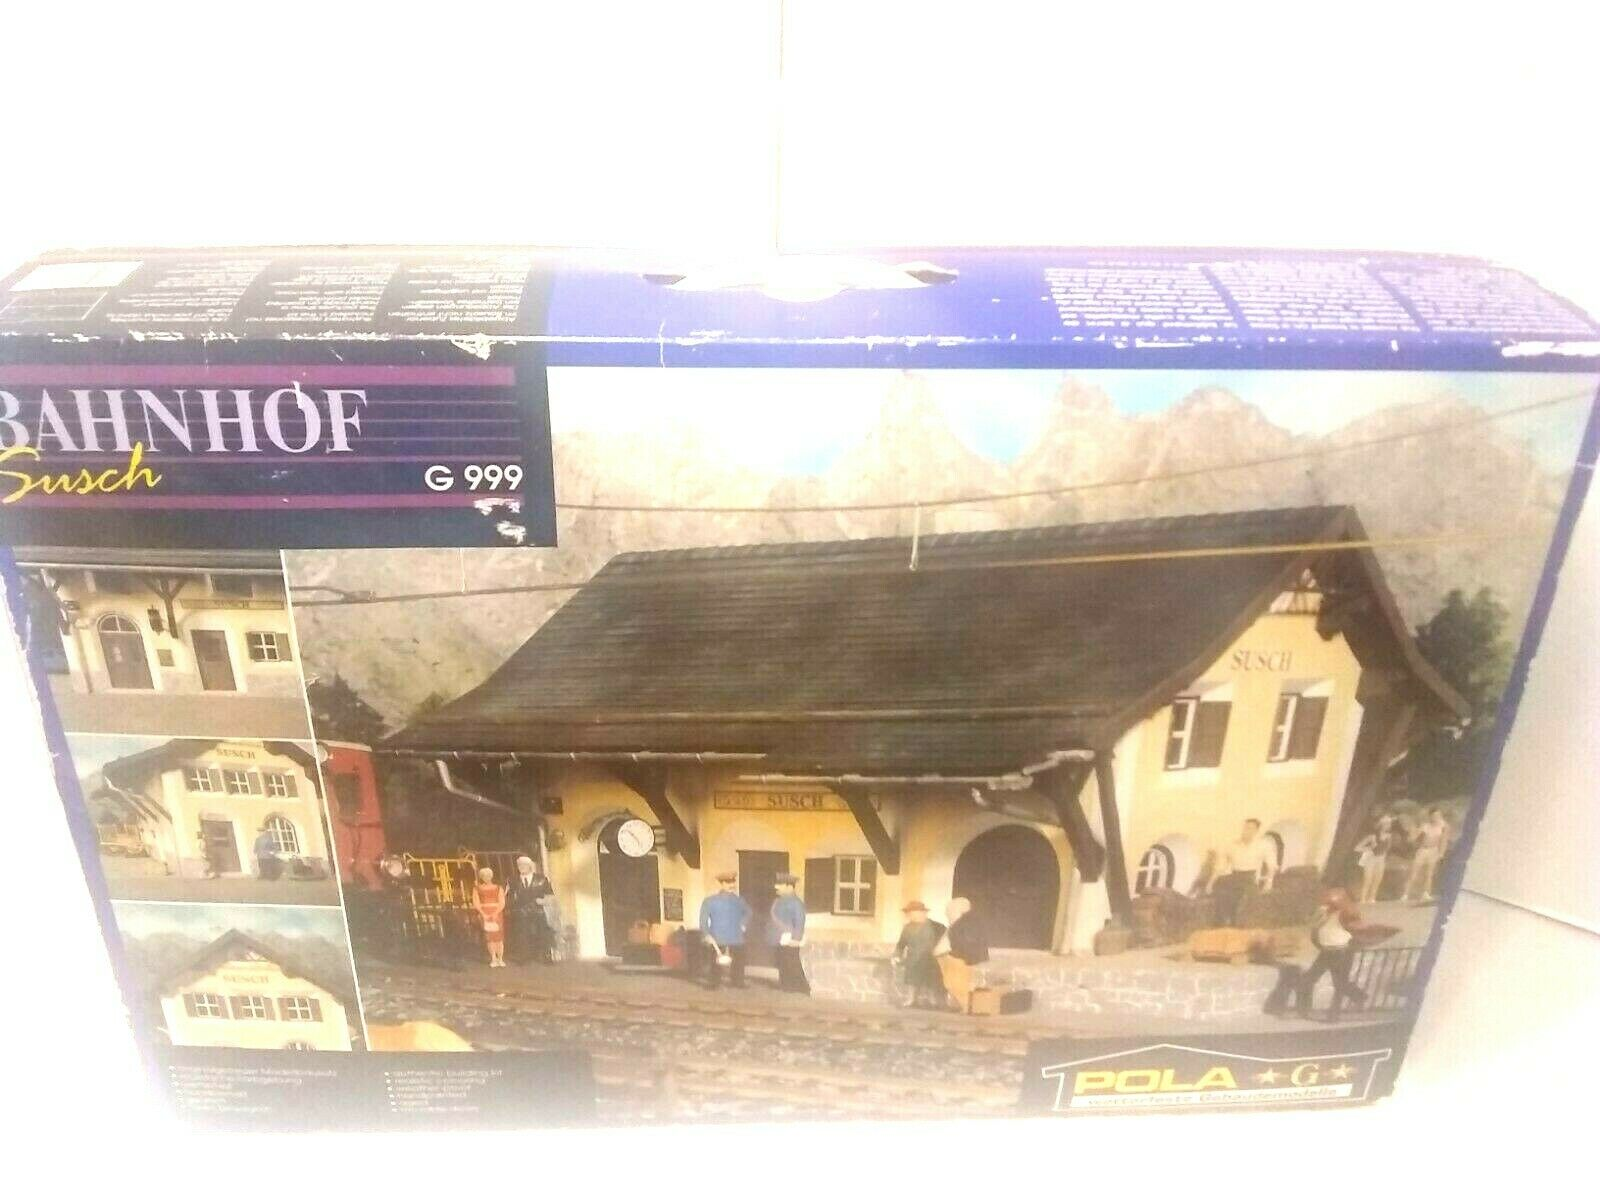 POLA SUSCH BAHNHOF G999 RAILROAD STATION MADE IN GERMANY G SCALE